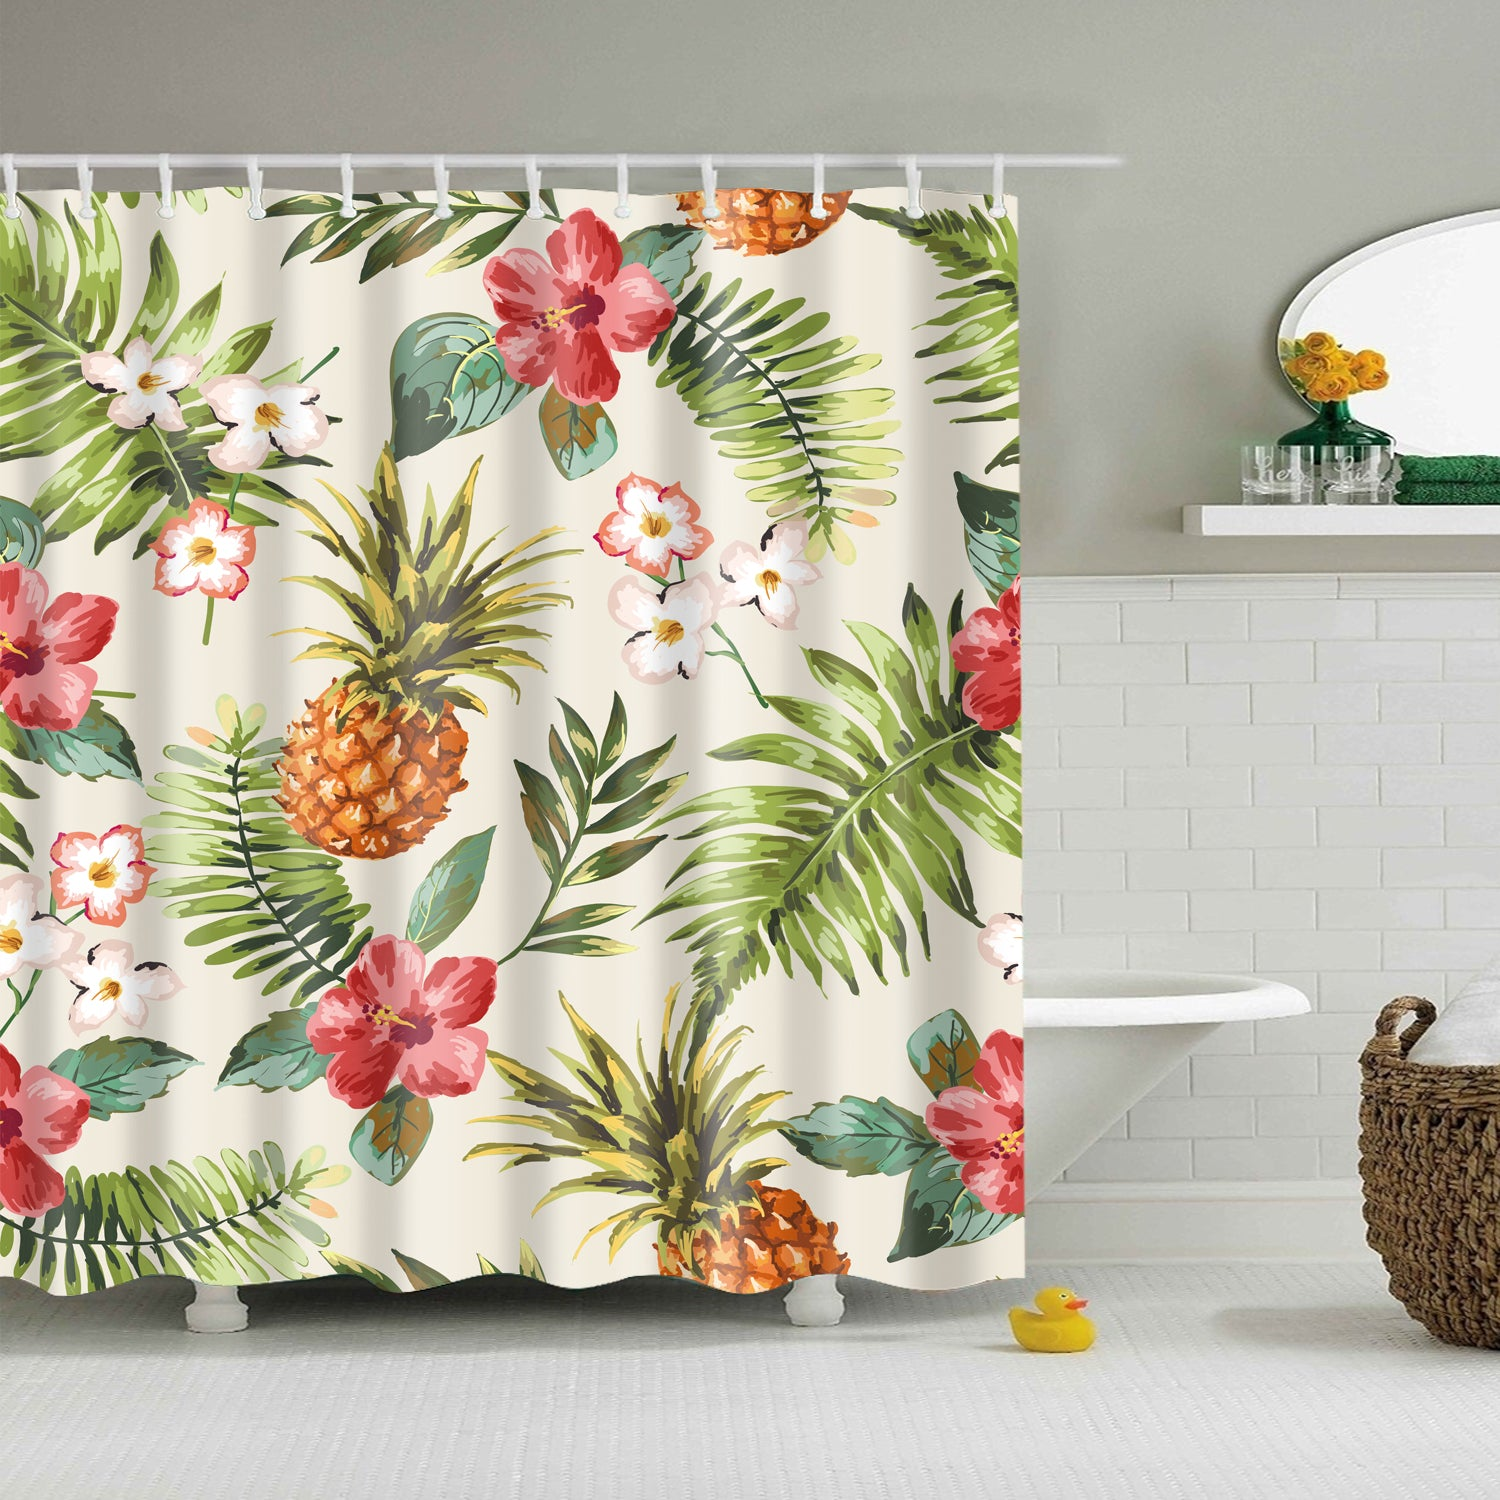 Tropical Flowers with Pineapple Shower Curtain